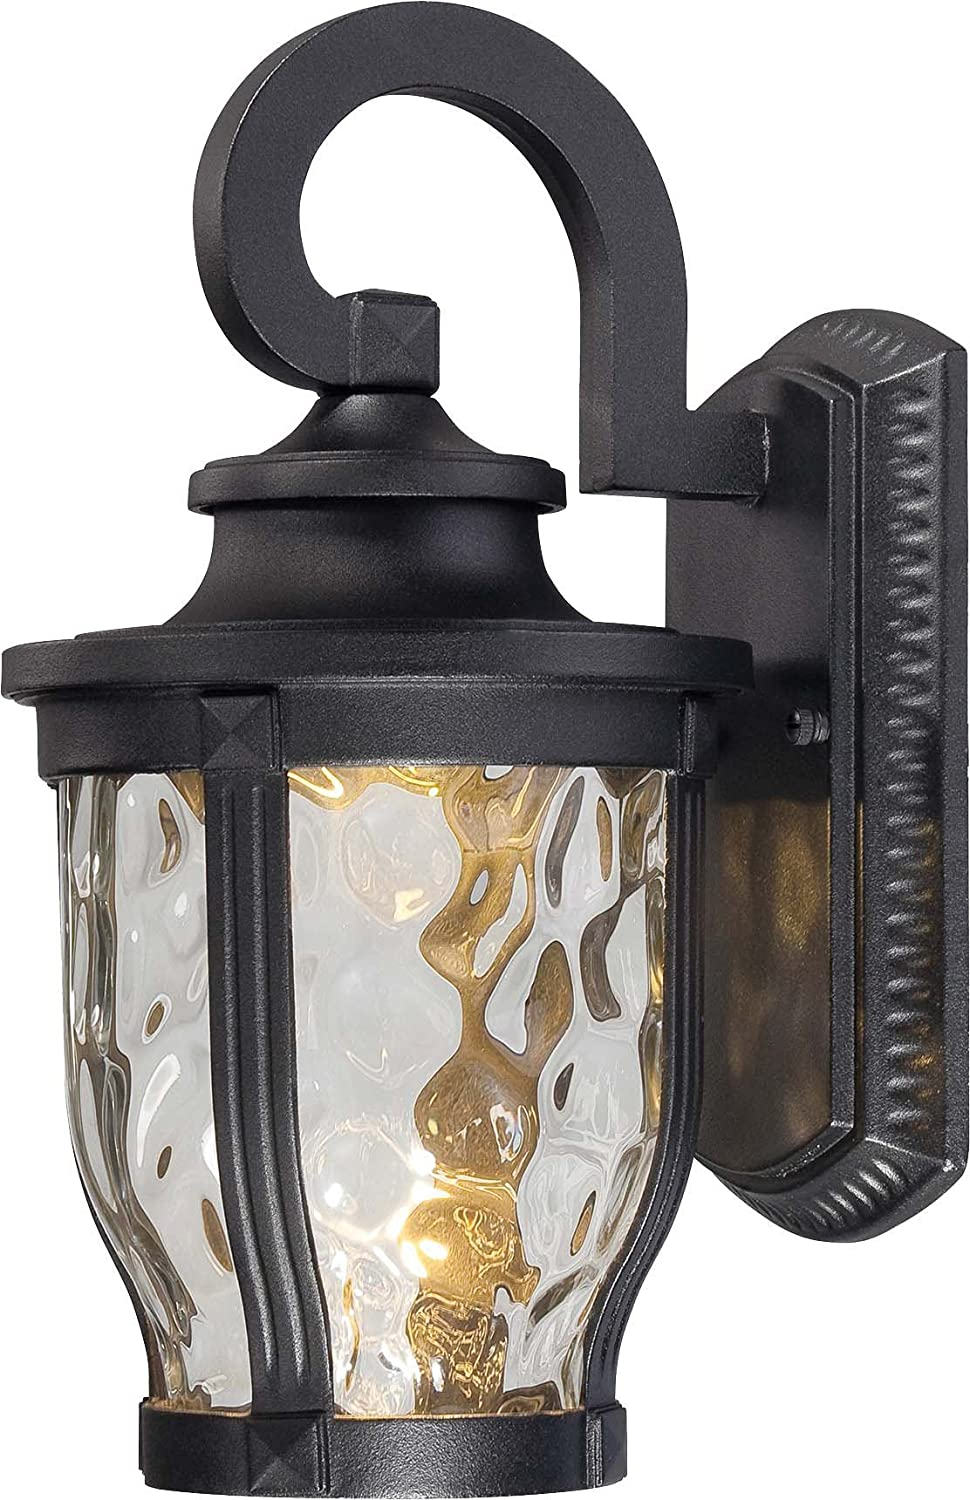 Minka Lavery Outdoor Wall Light 8761-66-L Merrimack Cast Aluminum Exterior LED Wall Lantern, Black